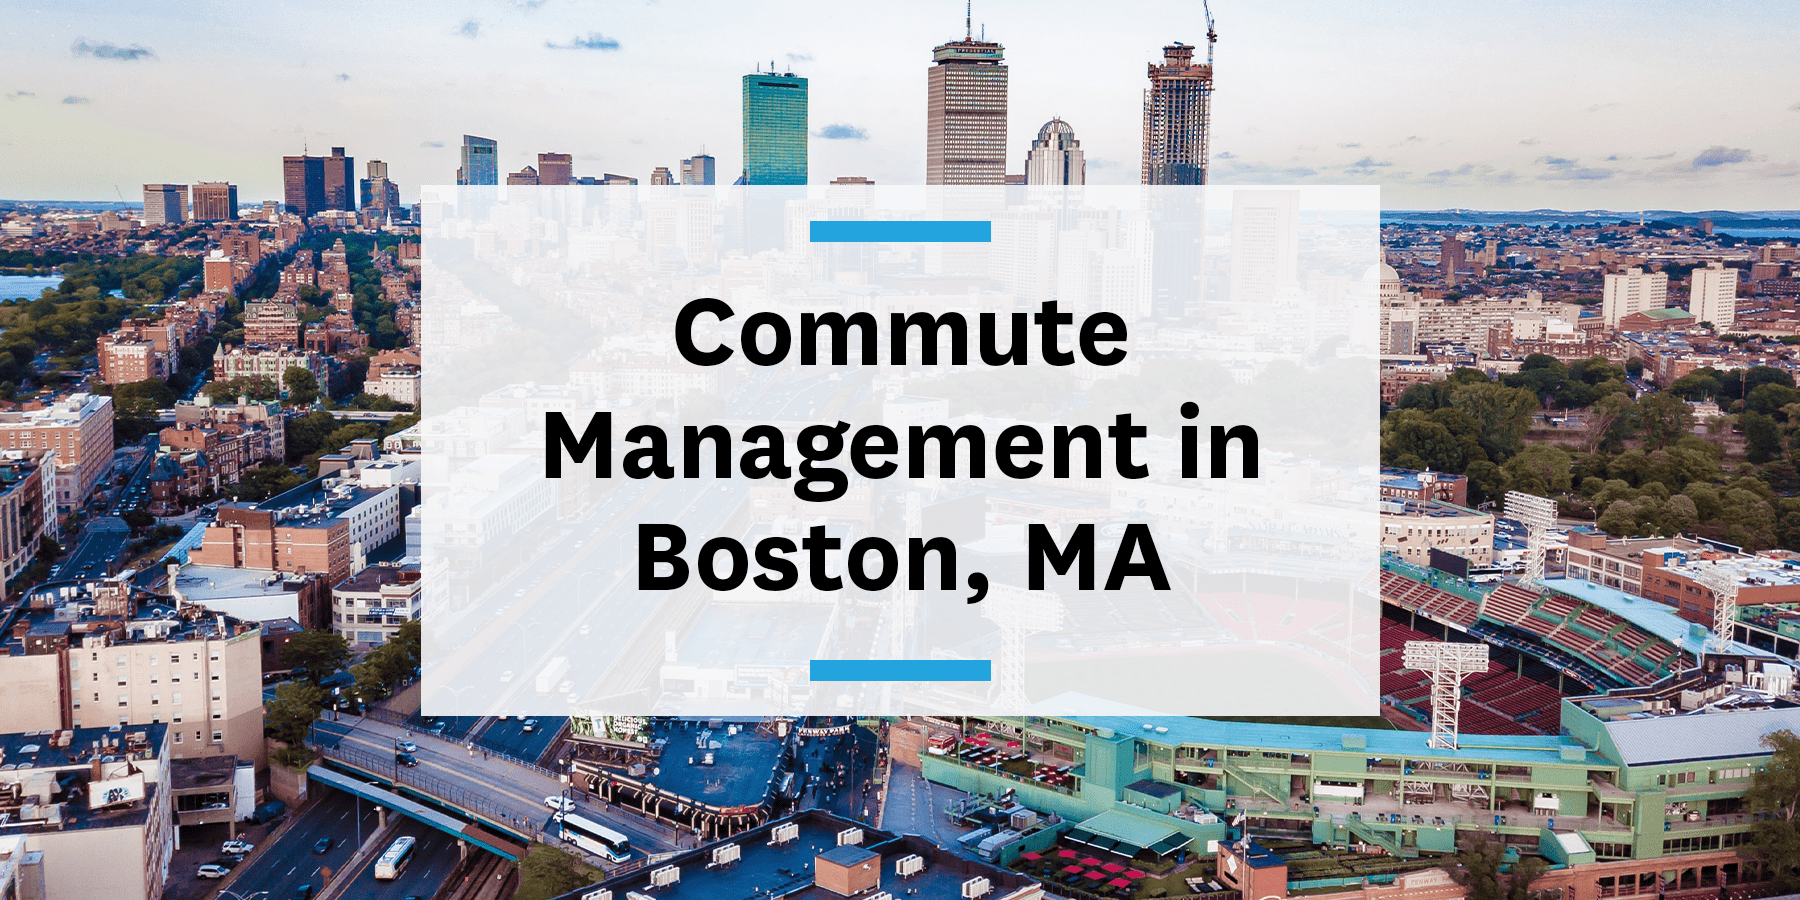 Feature image for commute management in Boston.